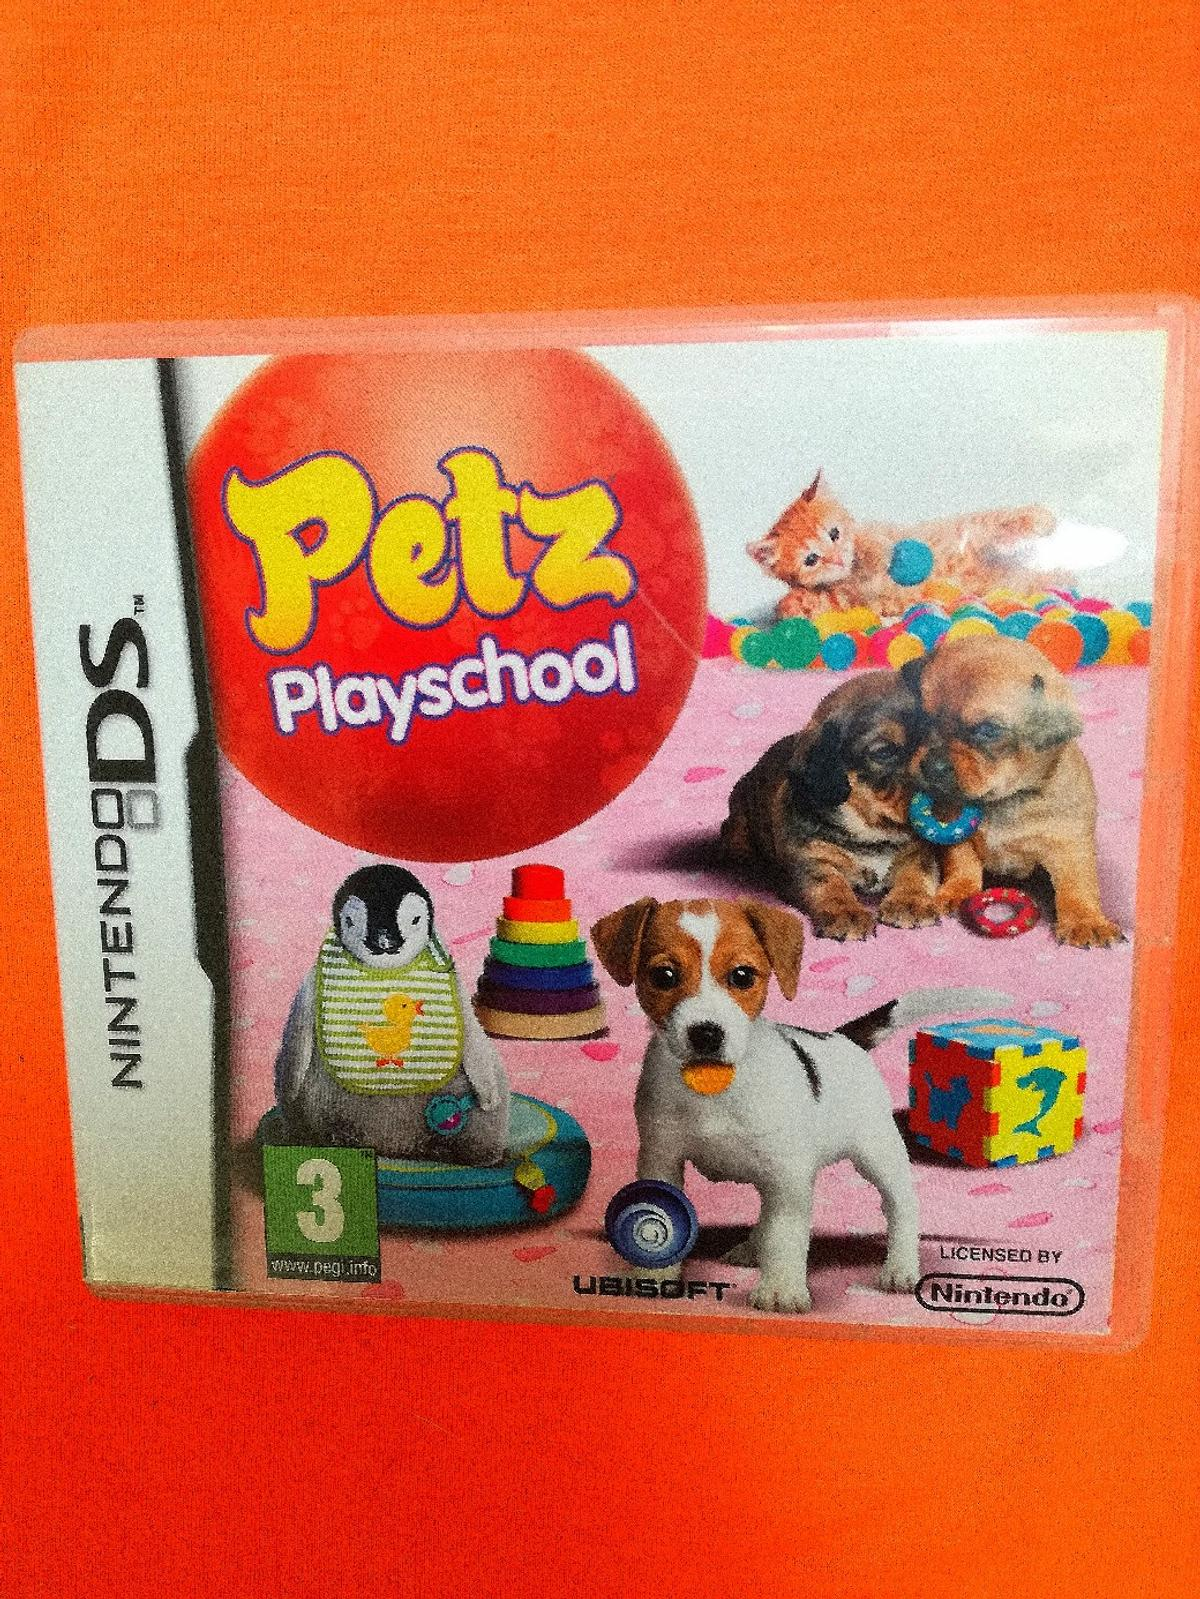 NINTENDO DS GAME PETS PLAYSCHOOL AS NEW CONDITION BUYER TO COLLECT ONLY THANKS FROM REDDITCH B96